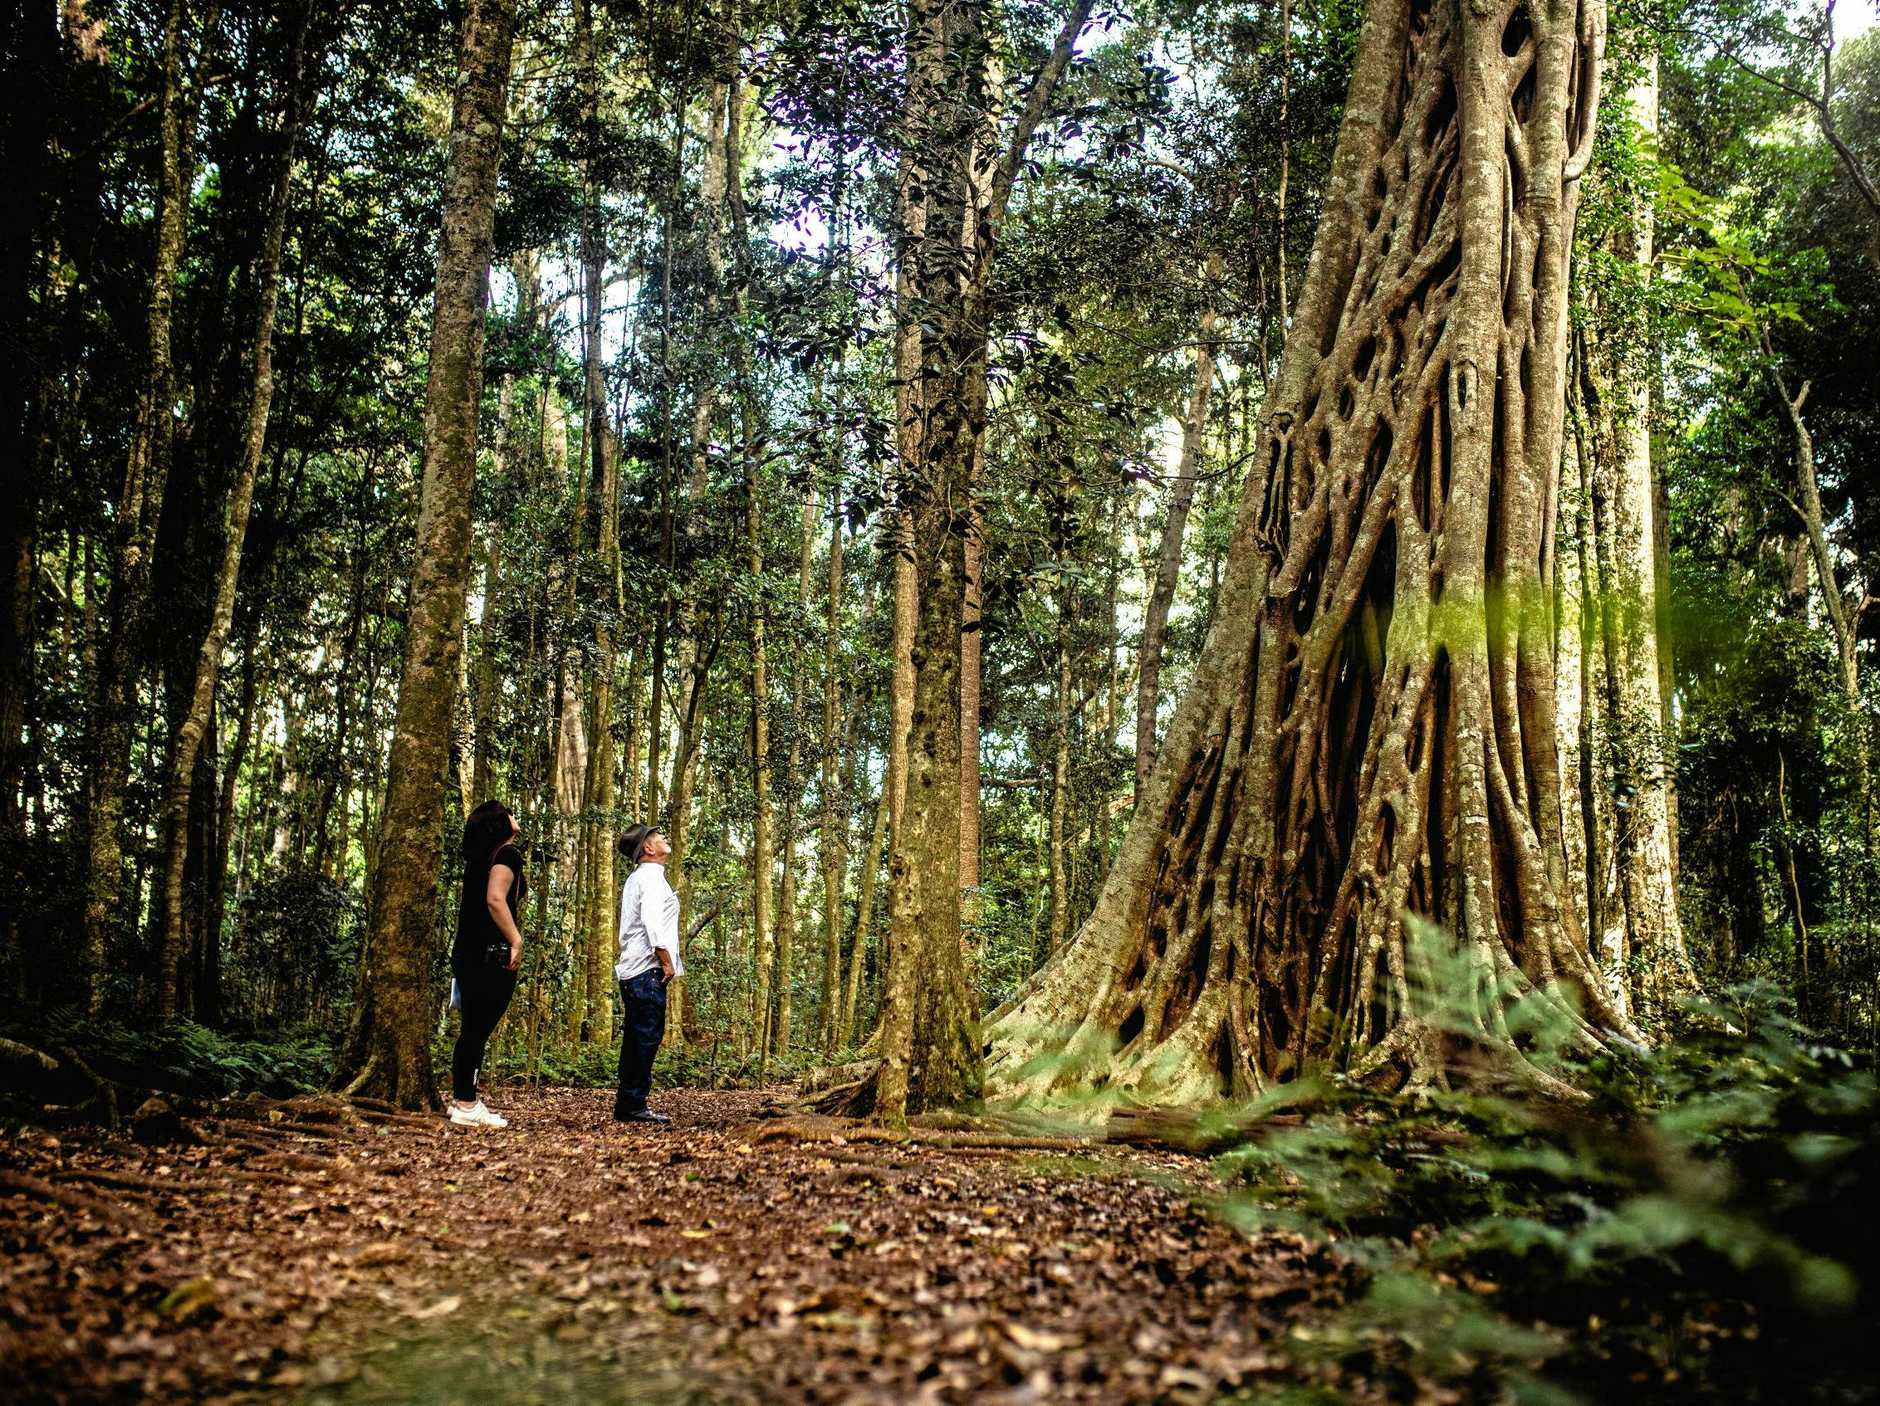 Bunya Mountains National Park covers an area of 19,493ha and has numerous walking tracks and hiking trails suitable for people with all levels of fitness.